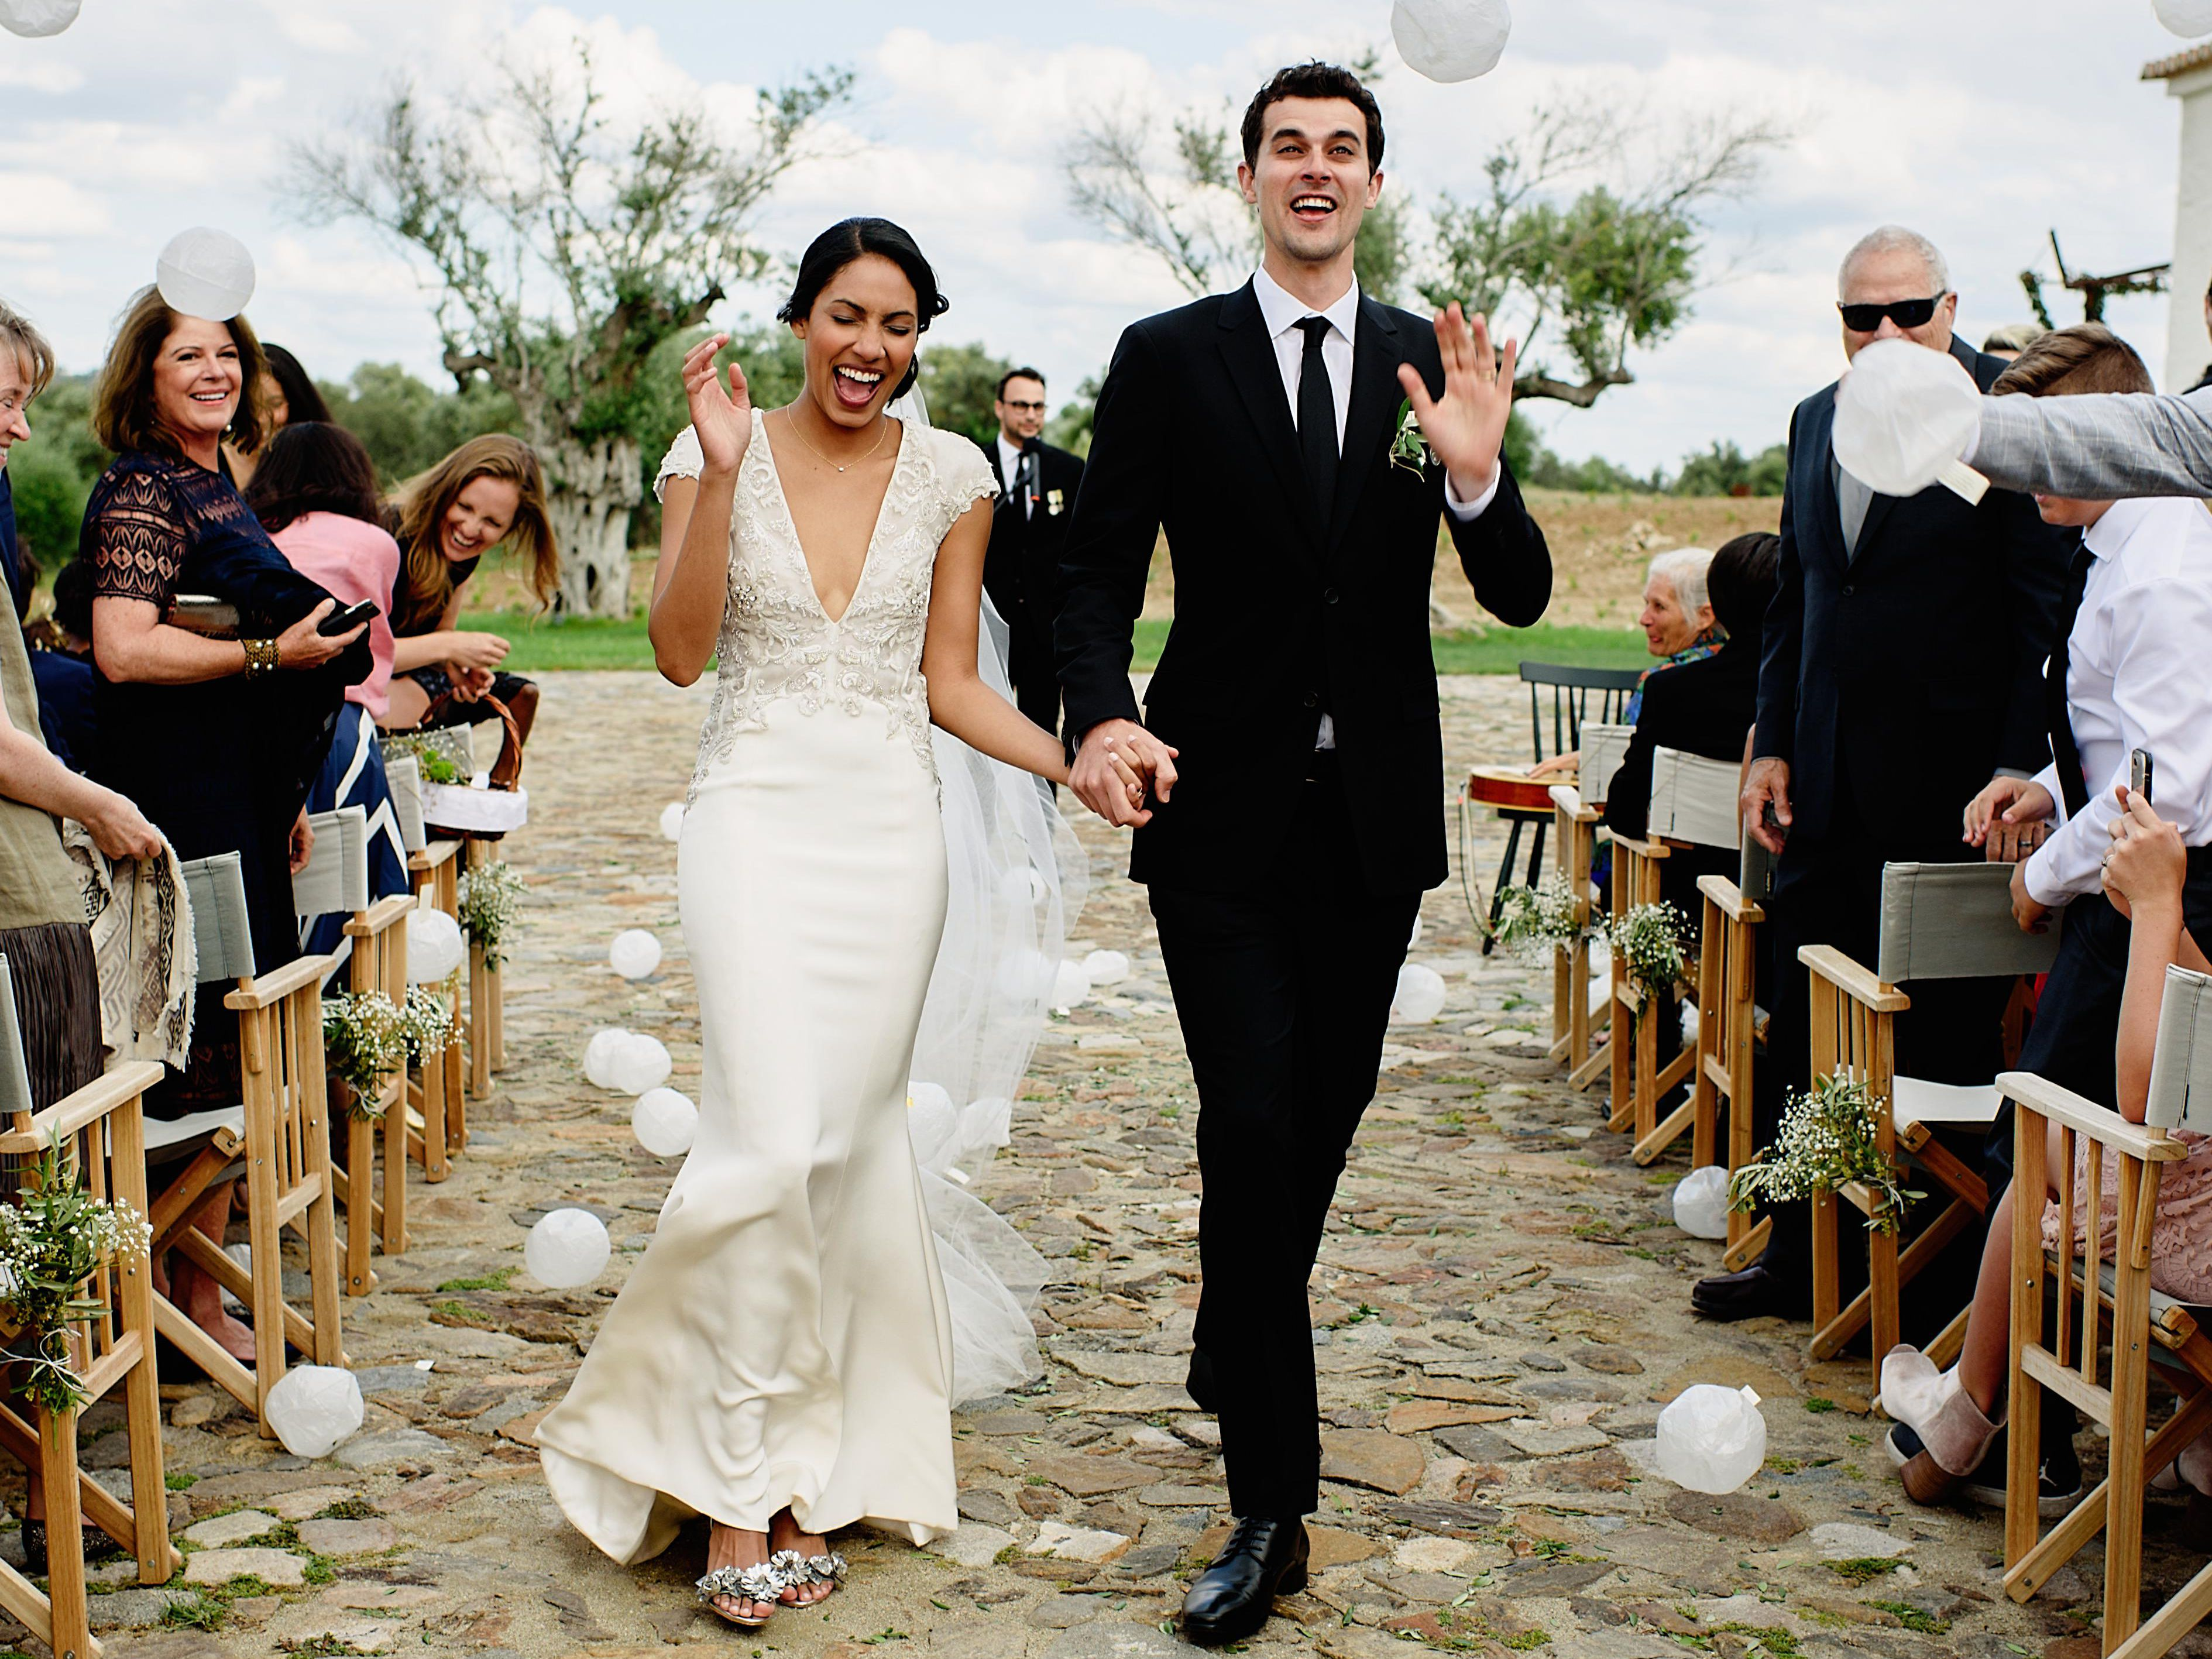 A Chic Diy Wedding In The Countryside Of Portugal